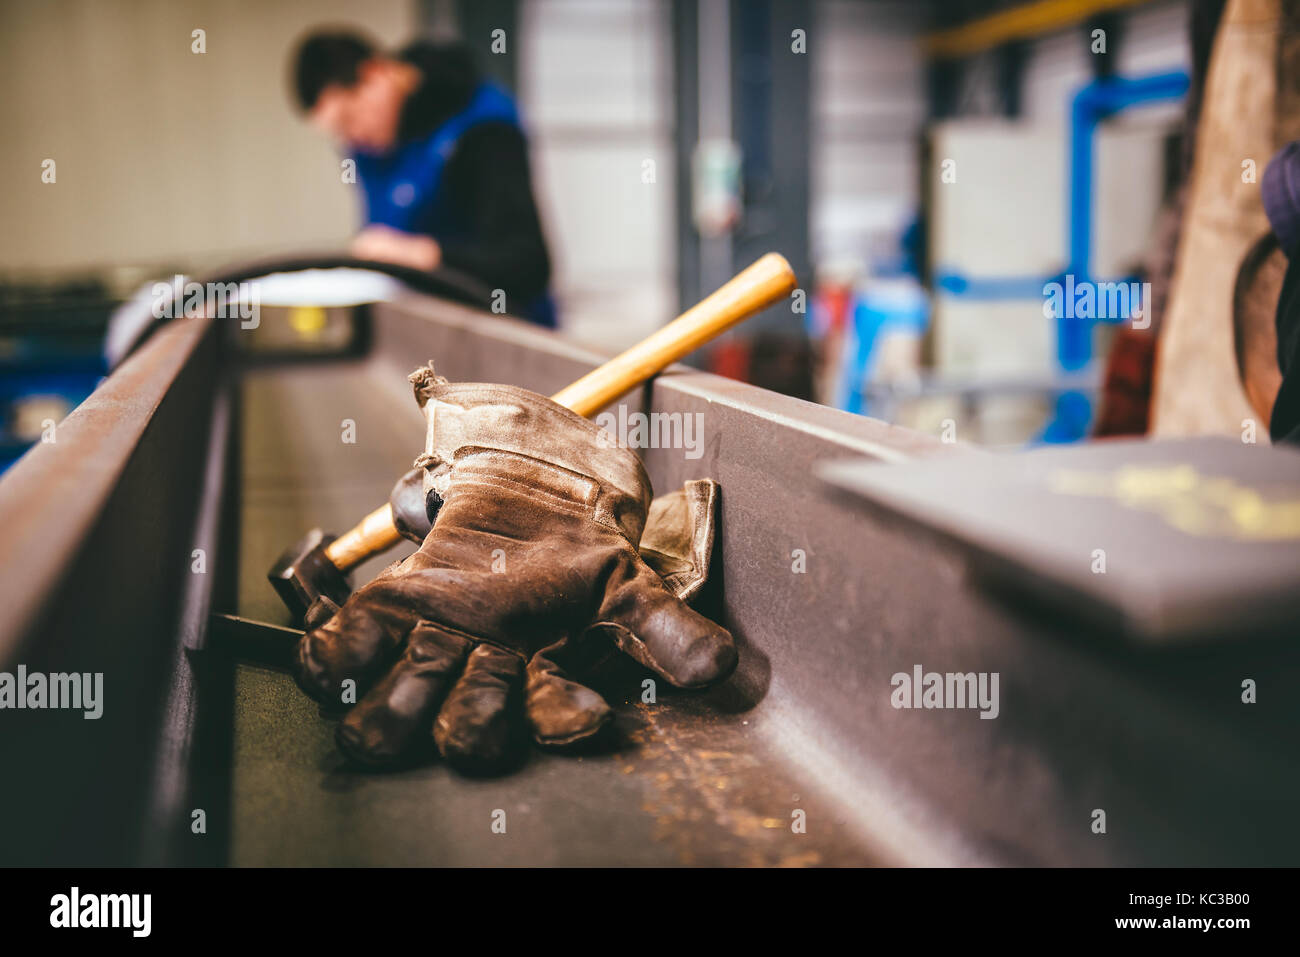 Protective gloves and hammer in the metal profile background Stock Photo